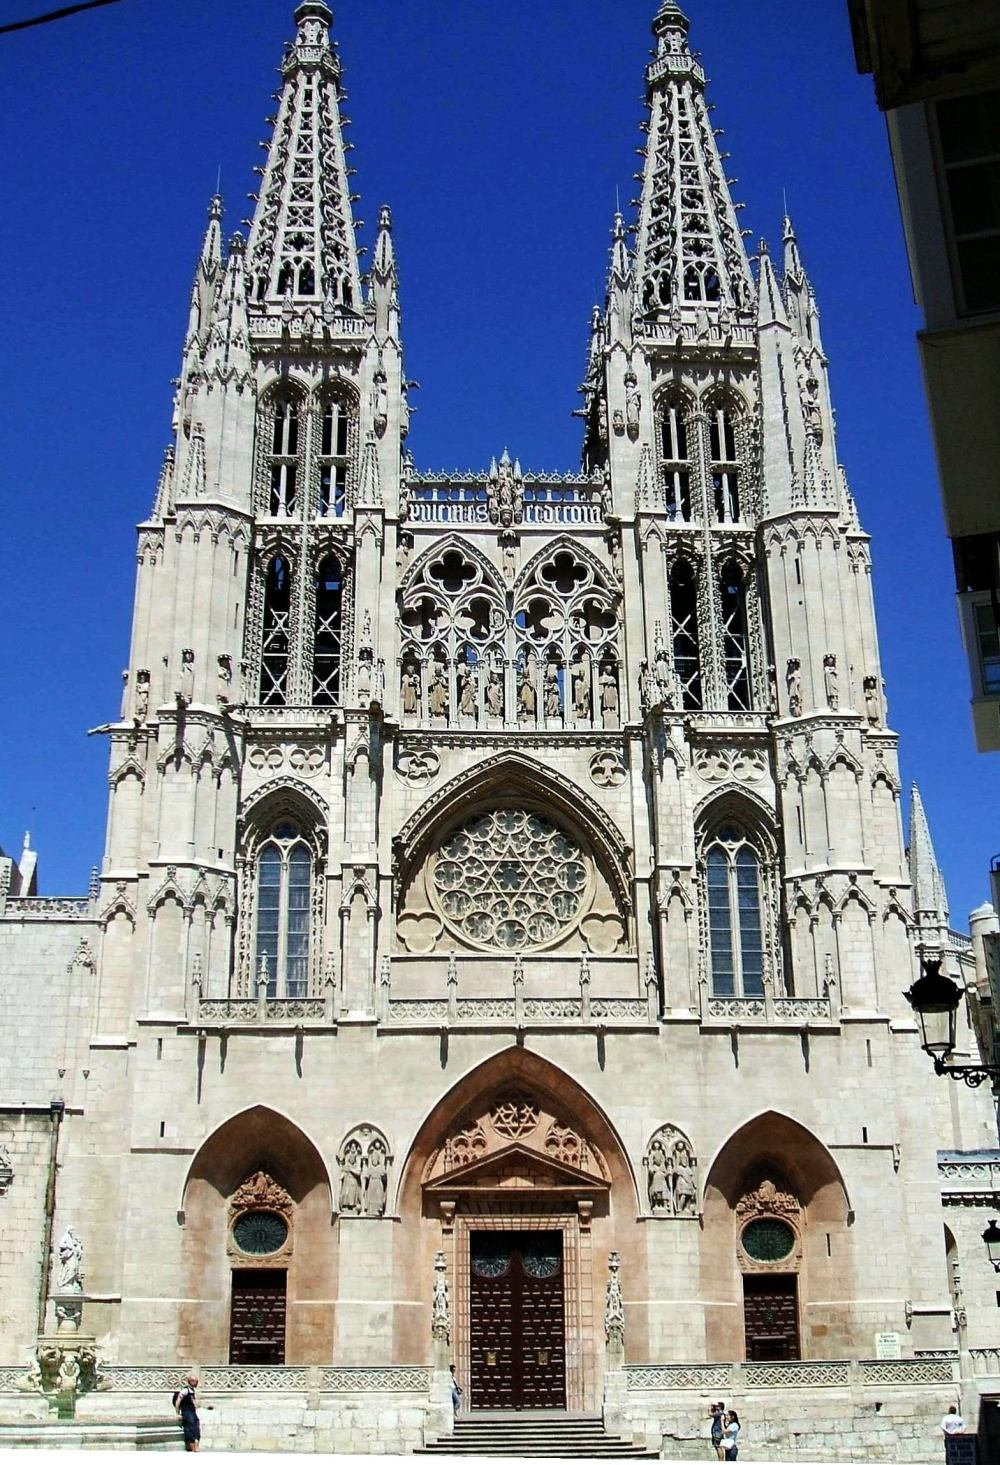 La Catedral de Burgos Photo Credit: https://en.wikipedia.org/wiki/Burgos_Cathedral